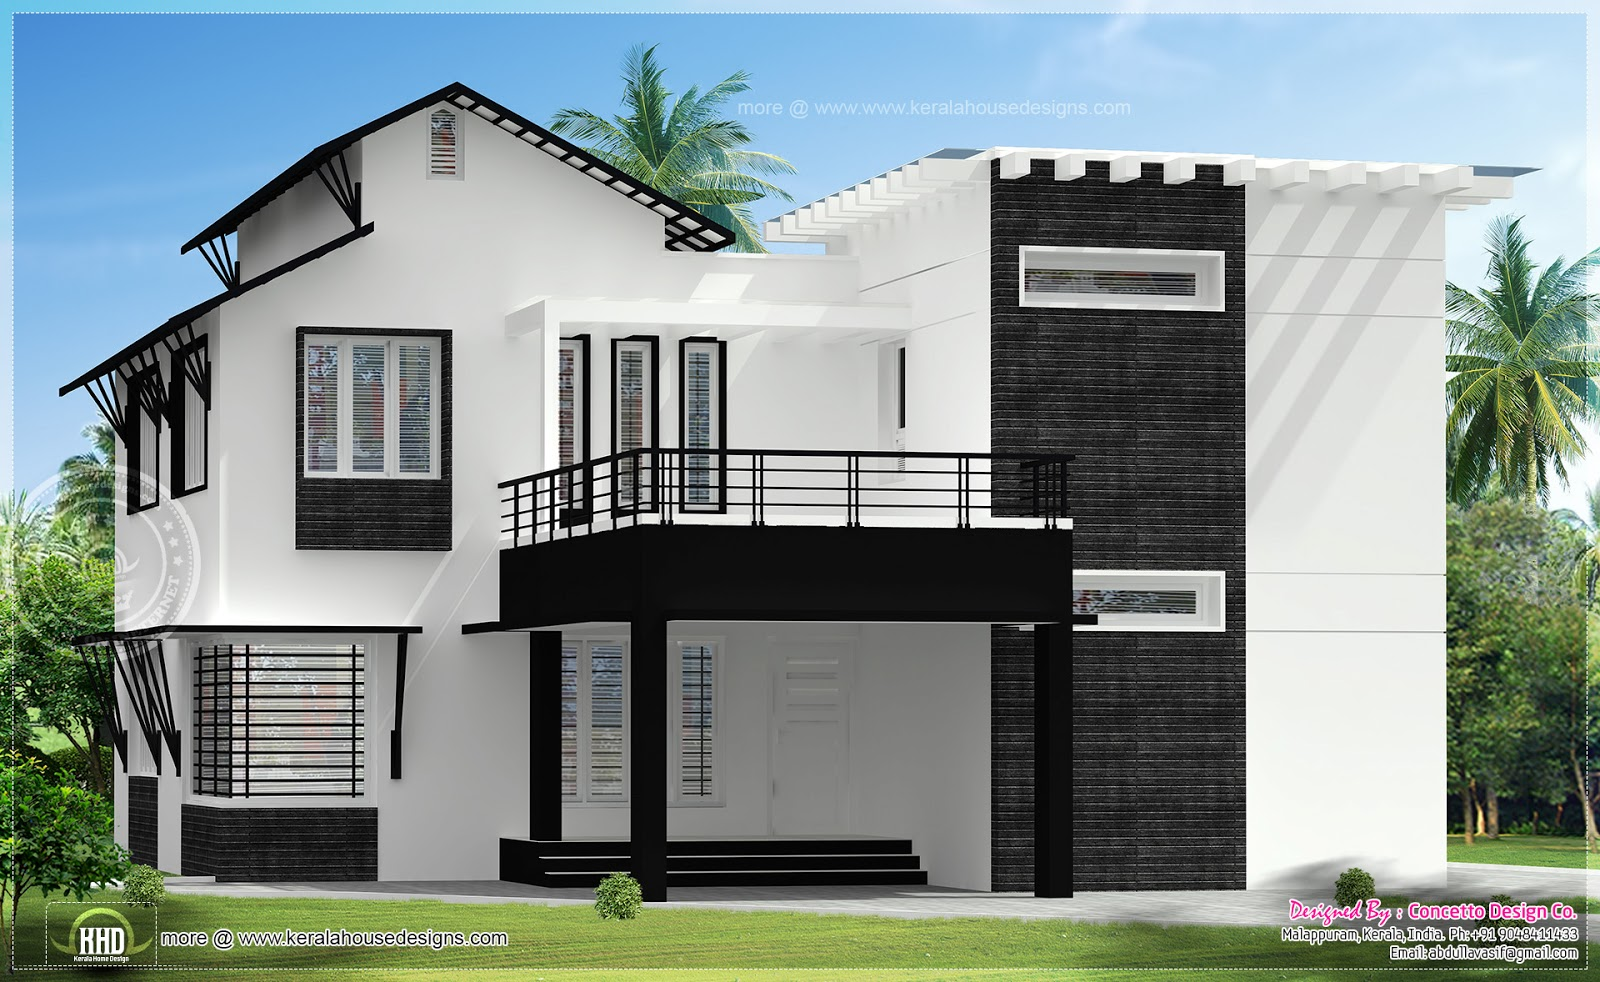 5 different house exteriors by concetto design kerala for House floor design